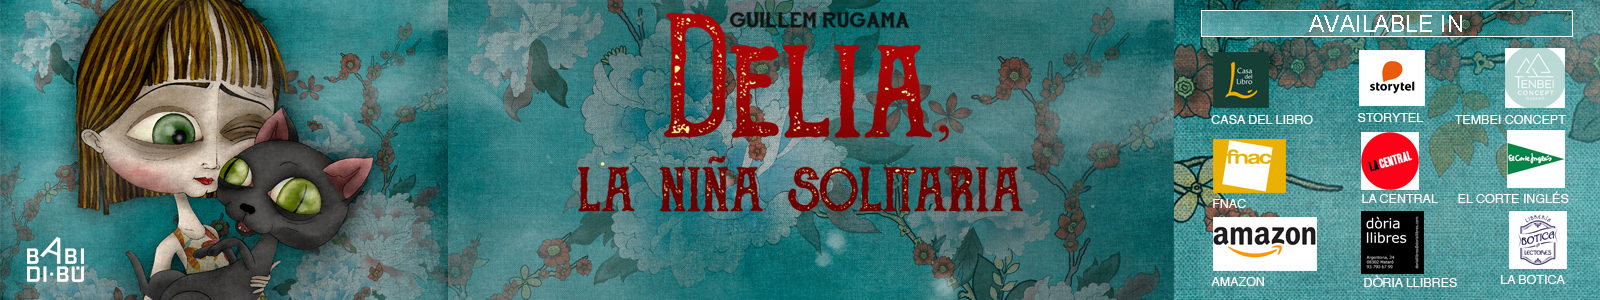 Delia, la niña solitaria. Book purchase.